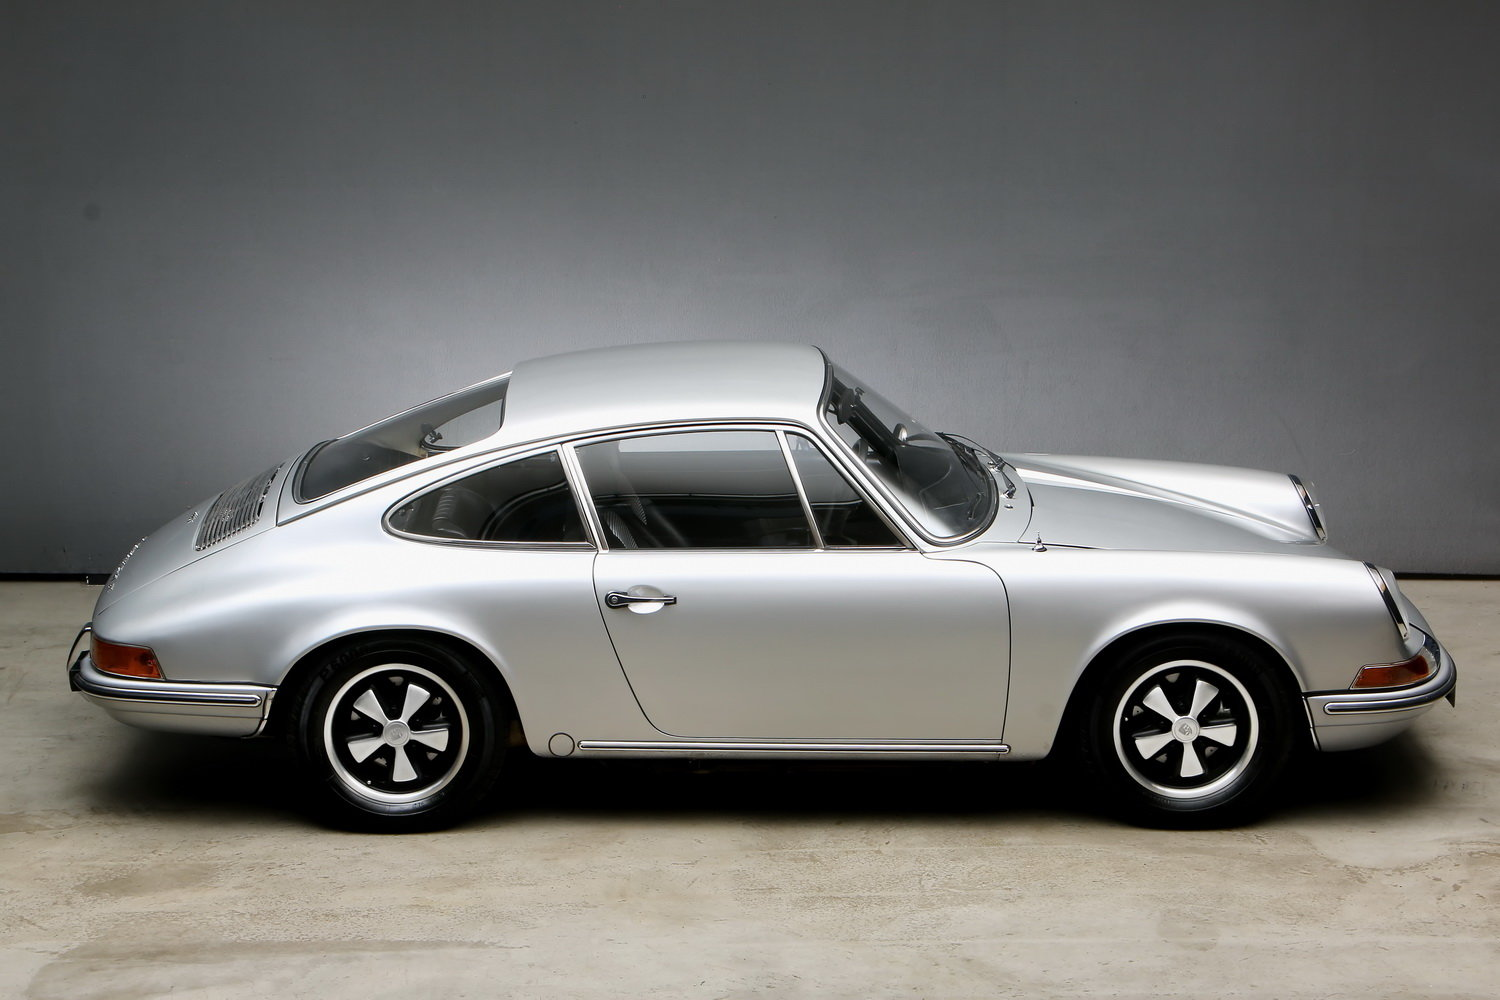 1970 911T 2.2 Ltr. Coup - Individualumbau - For Sale (picture 7 of 12)